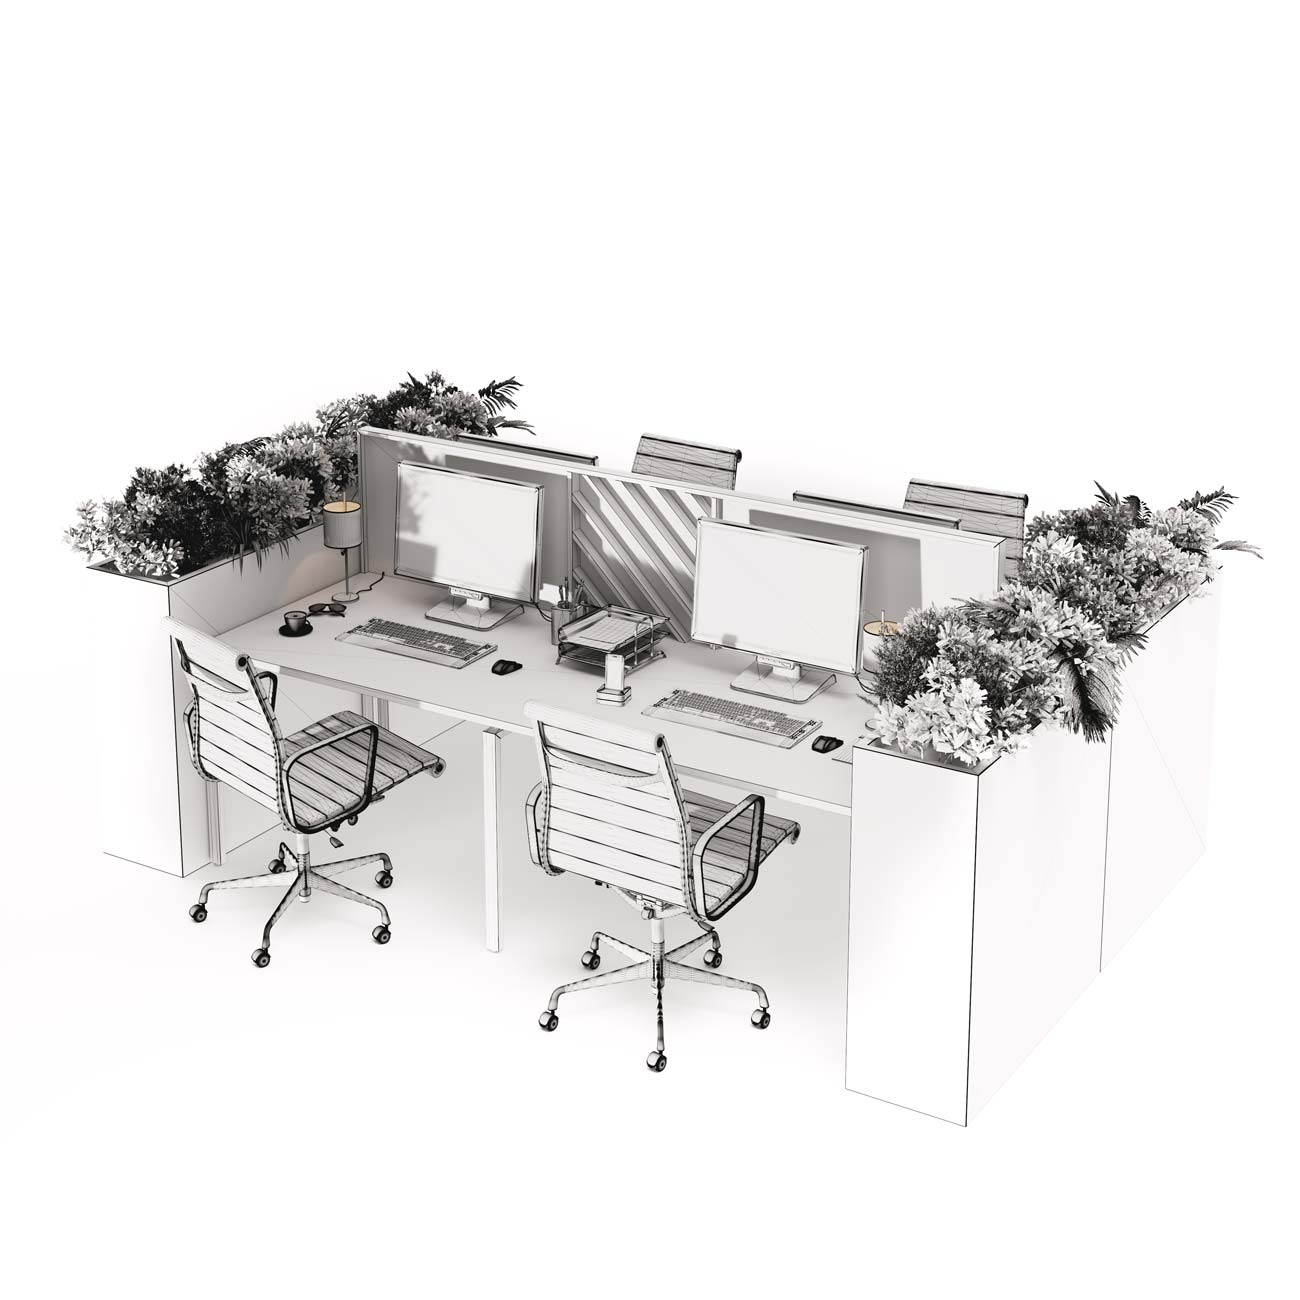 Model of the office furniture, Viscato 3D